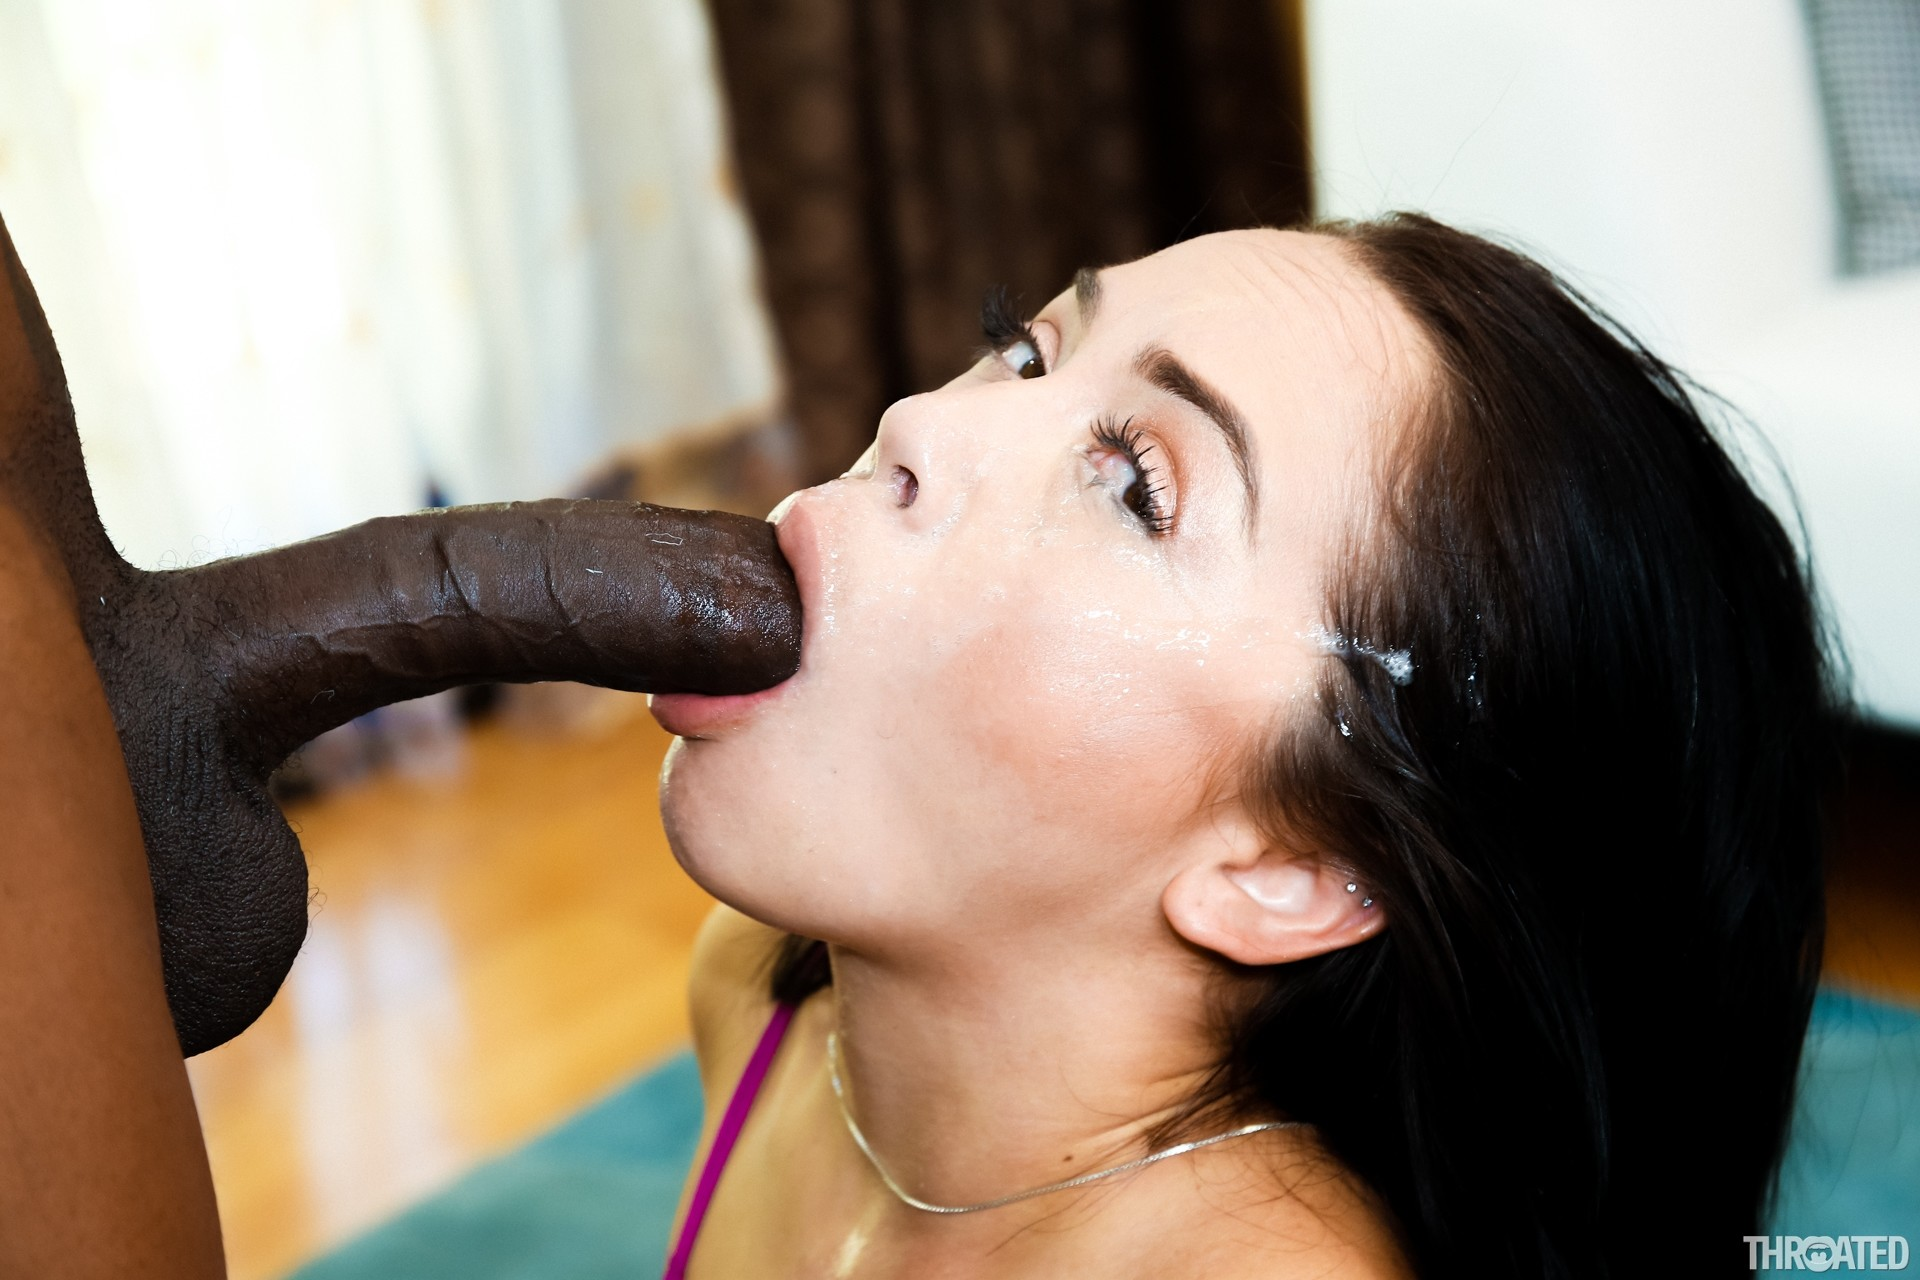 Milf deepthroat monstercock videos 7